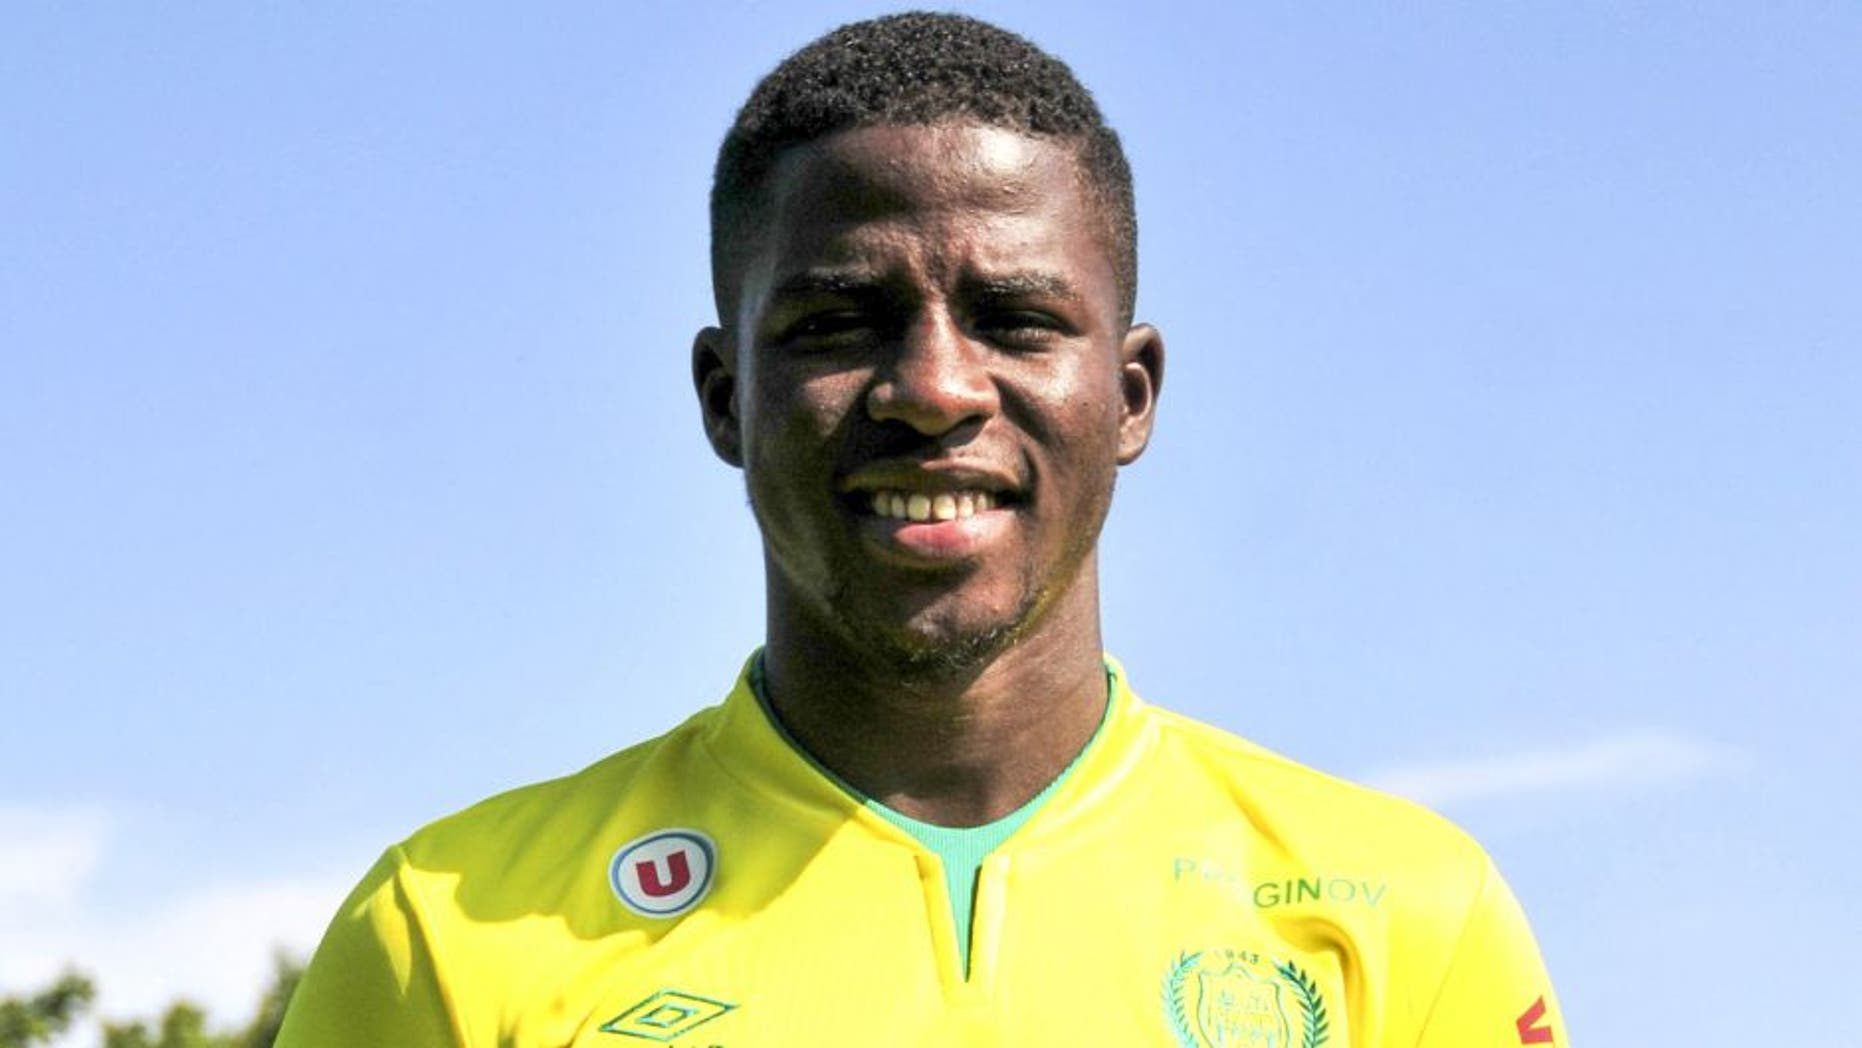 Papy Mison DJILOBODJI - 15.09.2014 - Photo officielle Nantes - Ligue 1 2014/2015 Photo : Philippe Le Brech / Icon Sport/MB Media